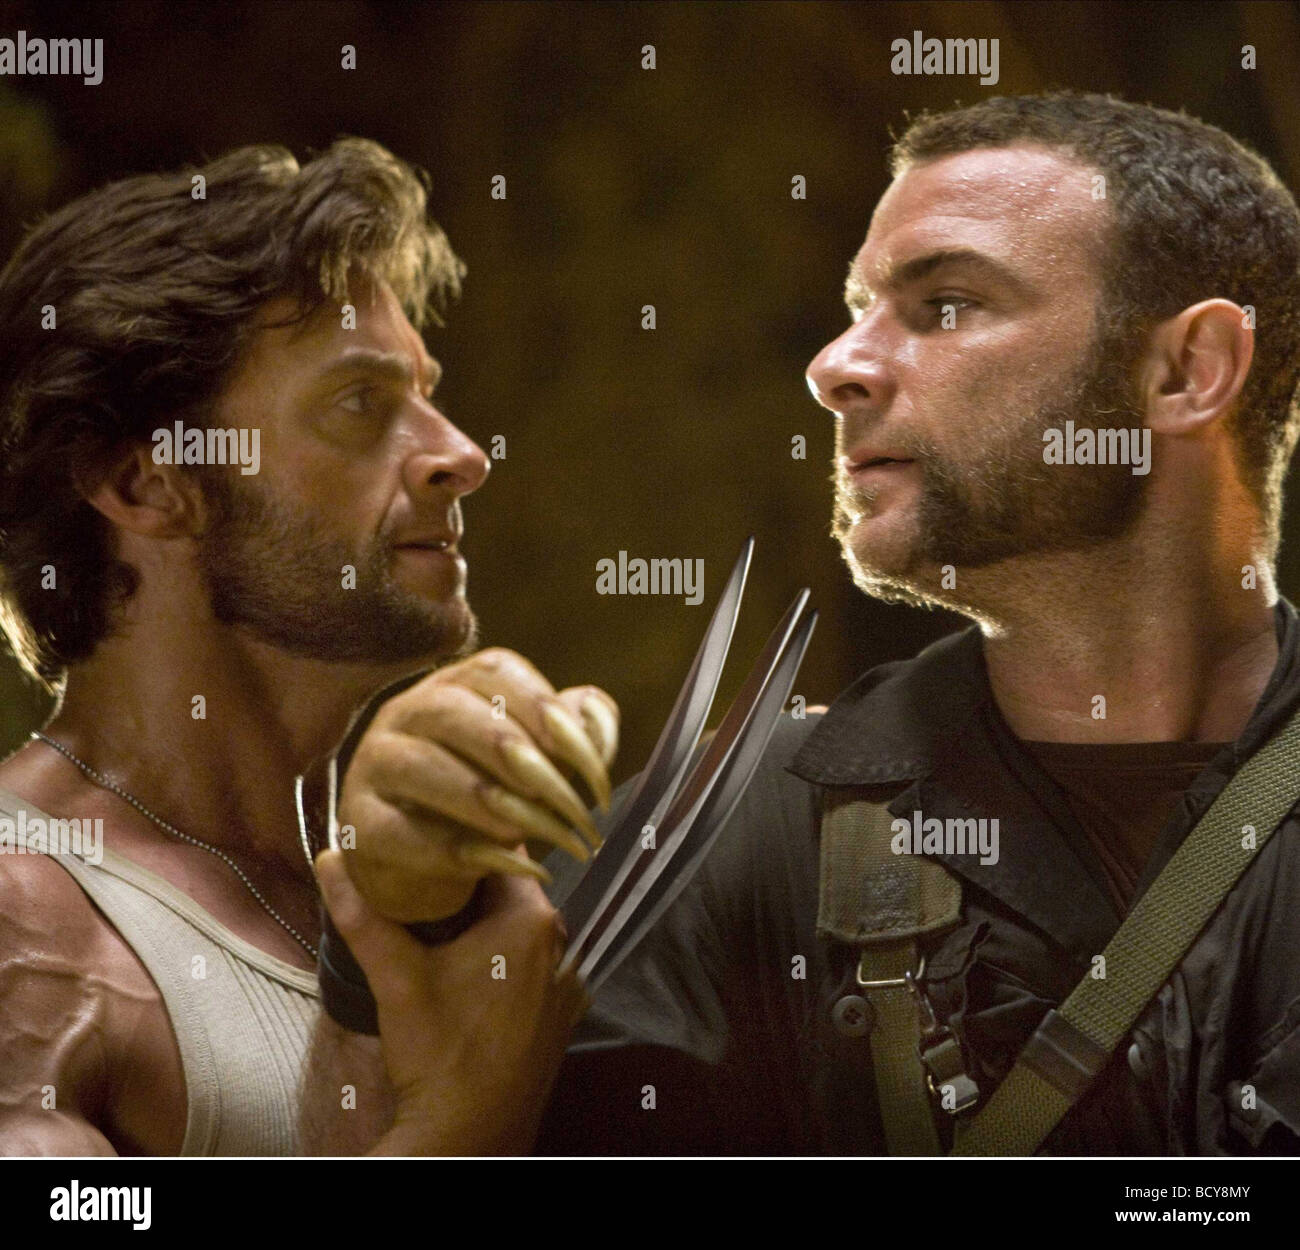 2009: Liev Schreiber Hugh Jackman X Men Stock Photos & Liev